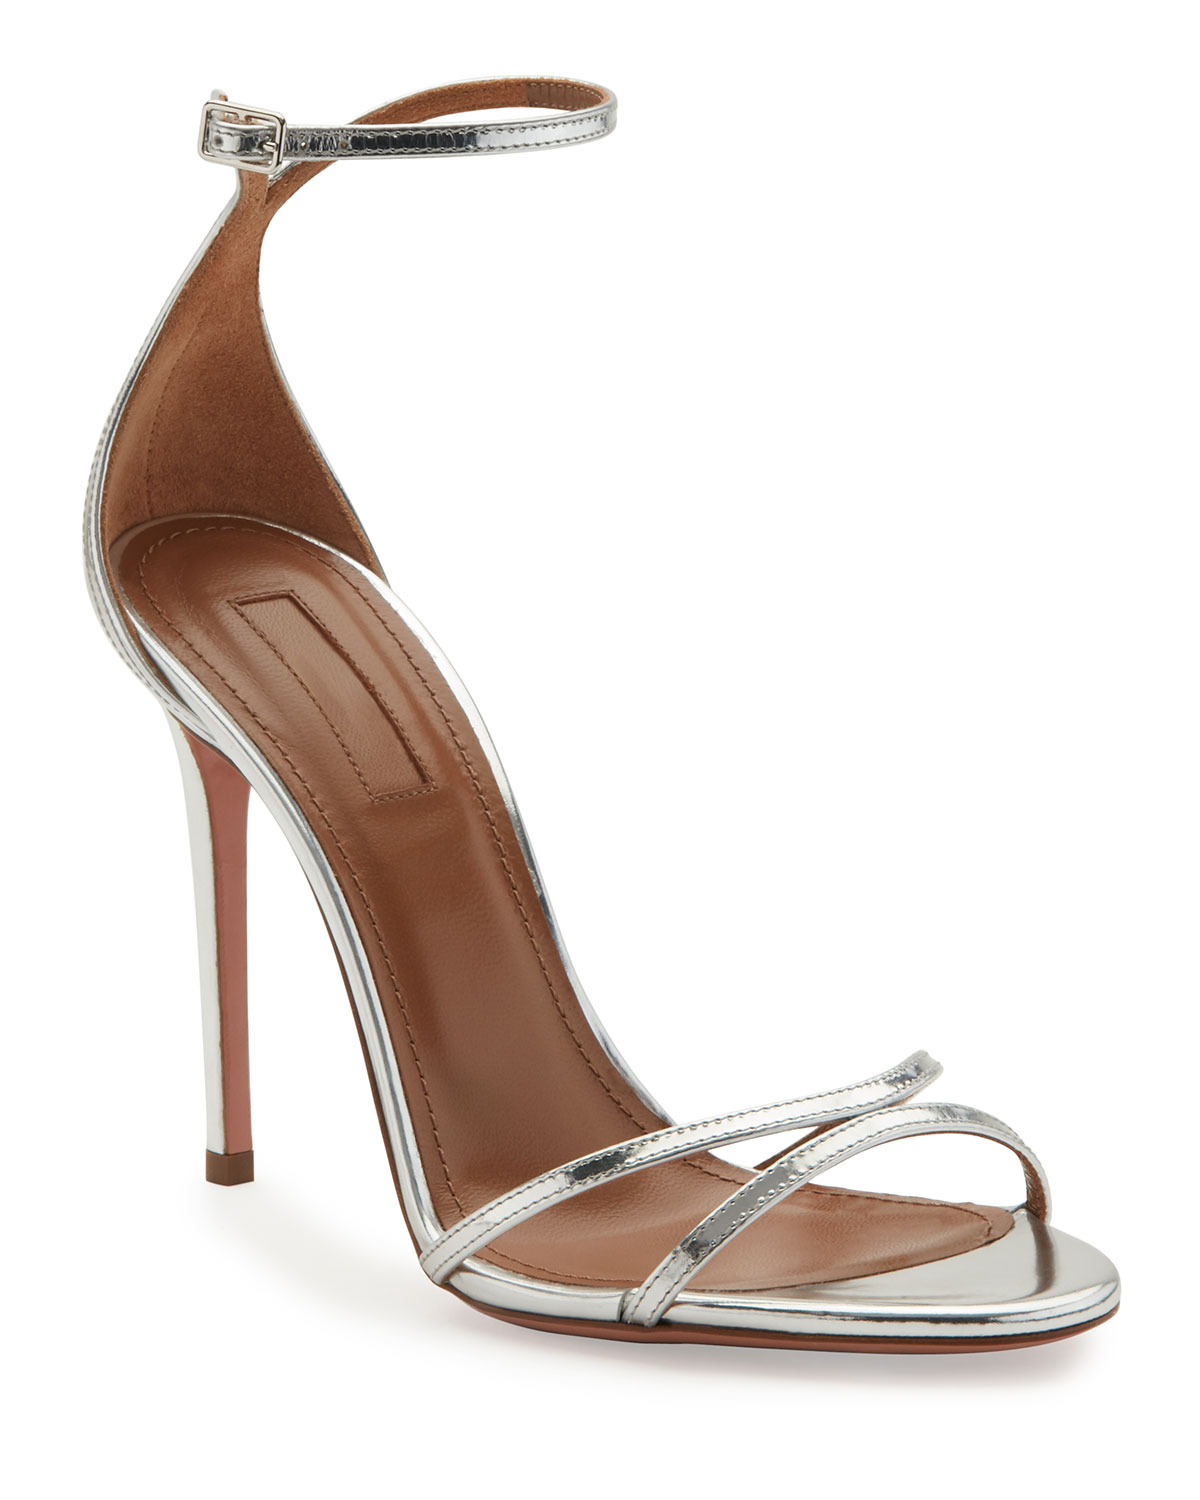 Aquazzura Purist Metallic Specchio Sandals Silver